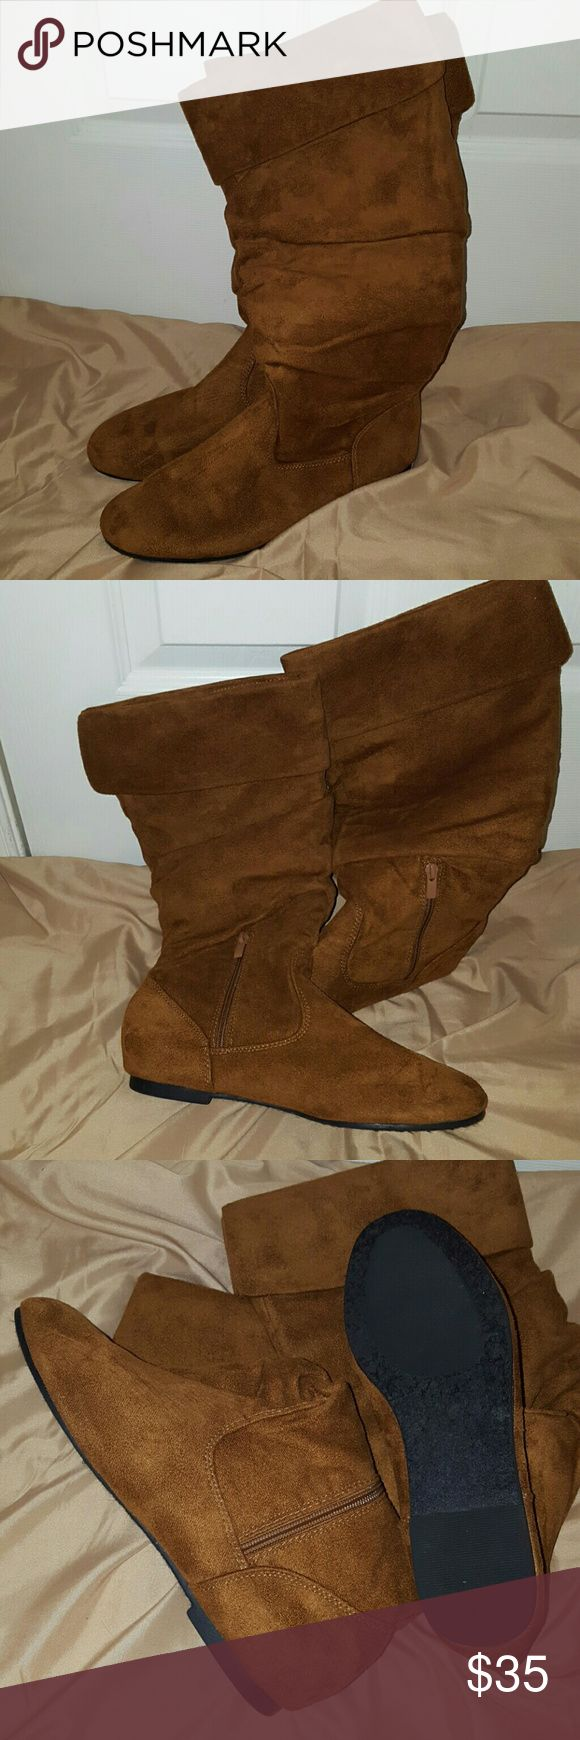 Tan faux suede knee high boots Max collection women's tan knee-high boots. Only wants they are in excellent condition Max collection Shoes Winter & Rain Boots